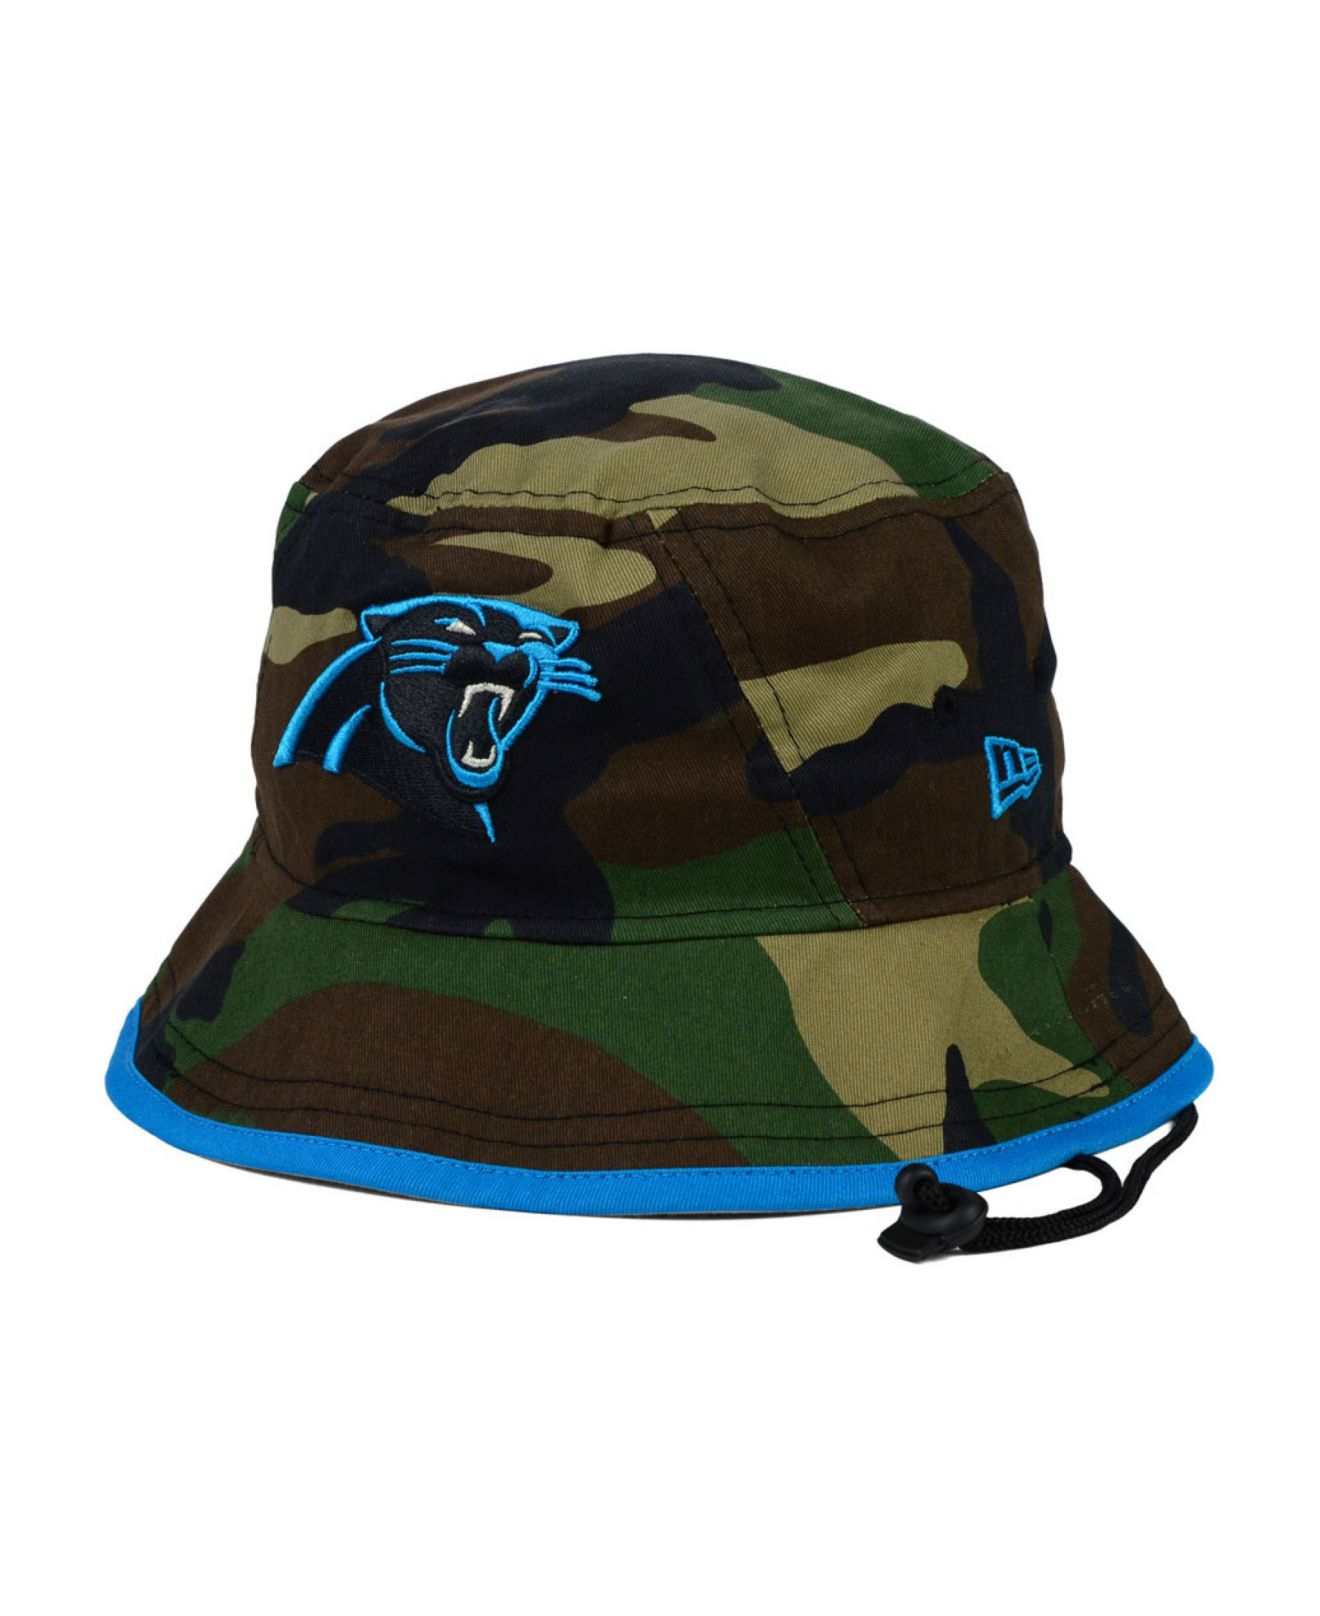 179a14c799d Lyst - KTZ Carolina Panthers Camo Pop Bucket Hat in Green for Men